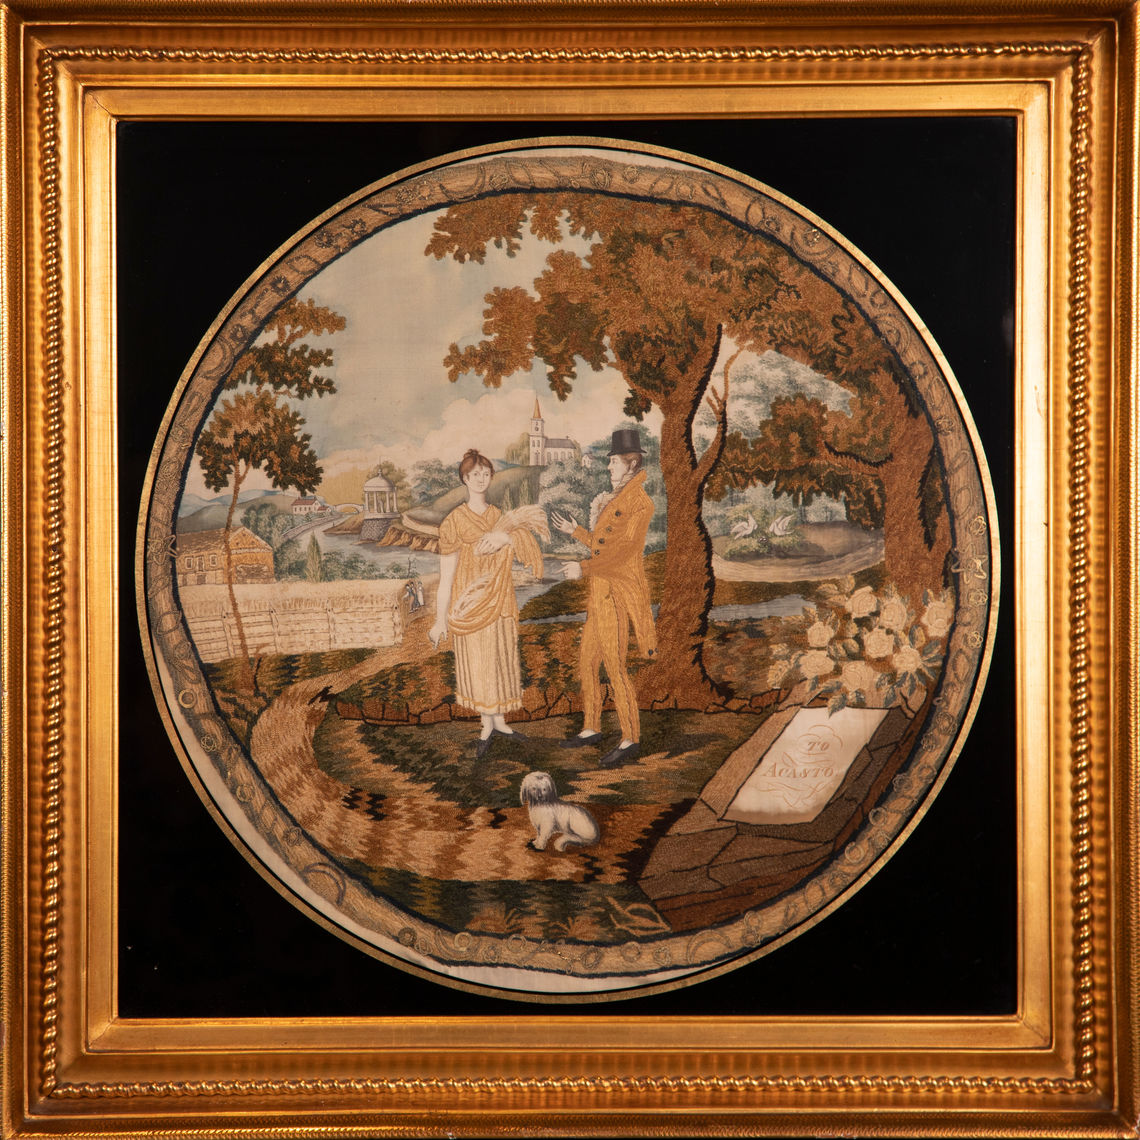 "The circular needlework embroidery shows a young woman holding stalks of grain in her left arm talking to a well-dressed young man near a large tree. A white dog sits in the foreground along with a memorial ""TO ACASTO,"" an ancient Greek king. A river in the background separates the foreground fields from the town background, which includes a church, a classical temple, two birds tending a nest, and other images. A narrow border with metallic spangles sewn in place surrounds the composition."